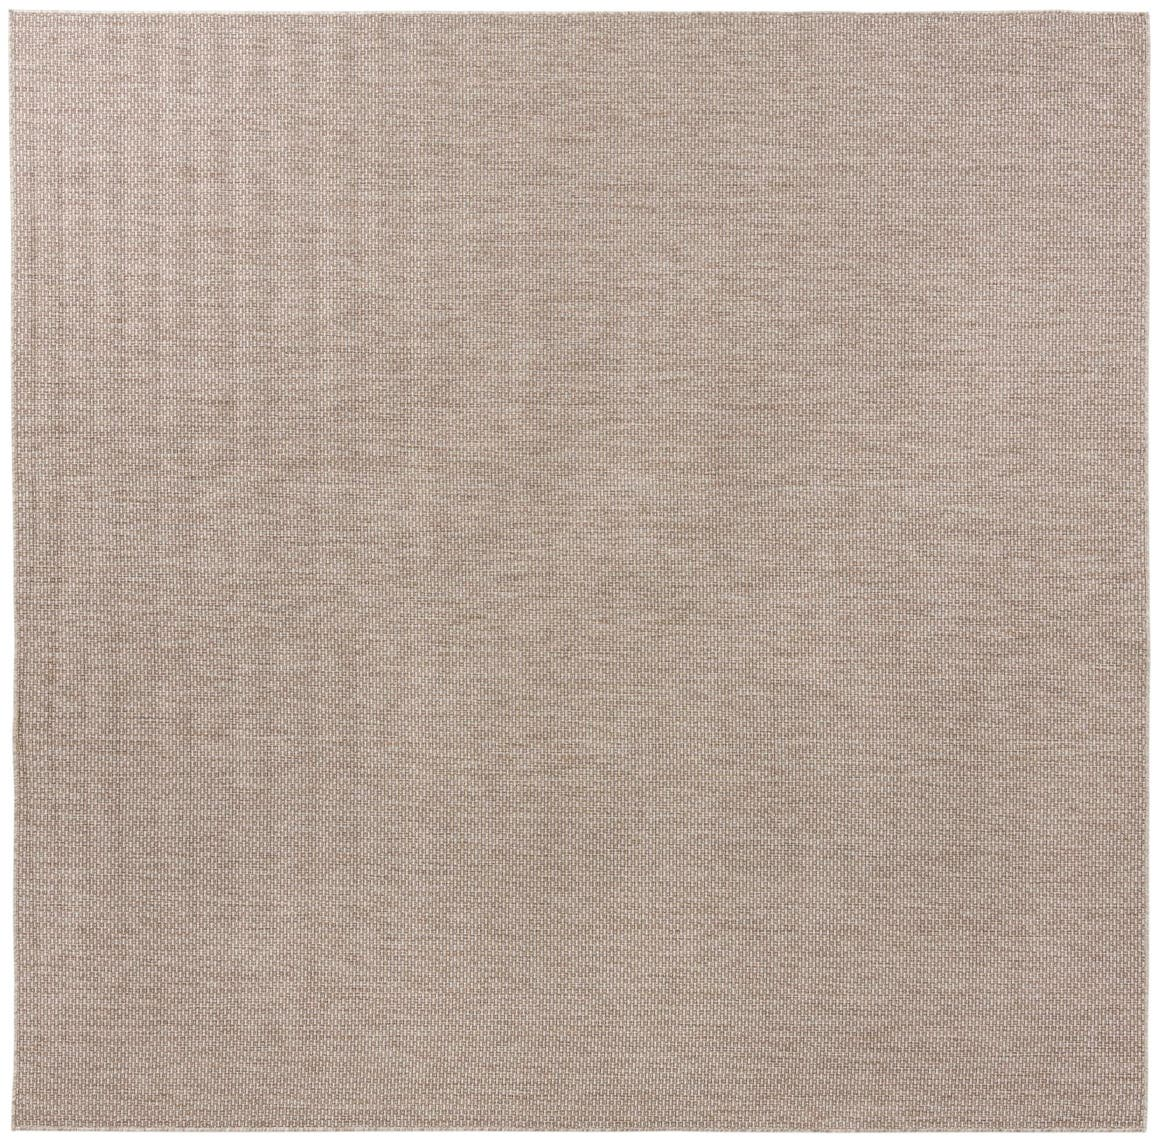 10' 8 x 10' 8 Outdoor Solid Square Rug main image